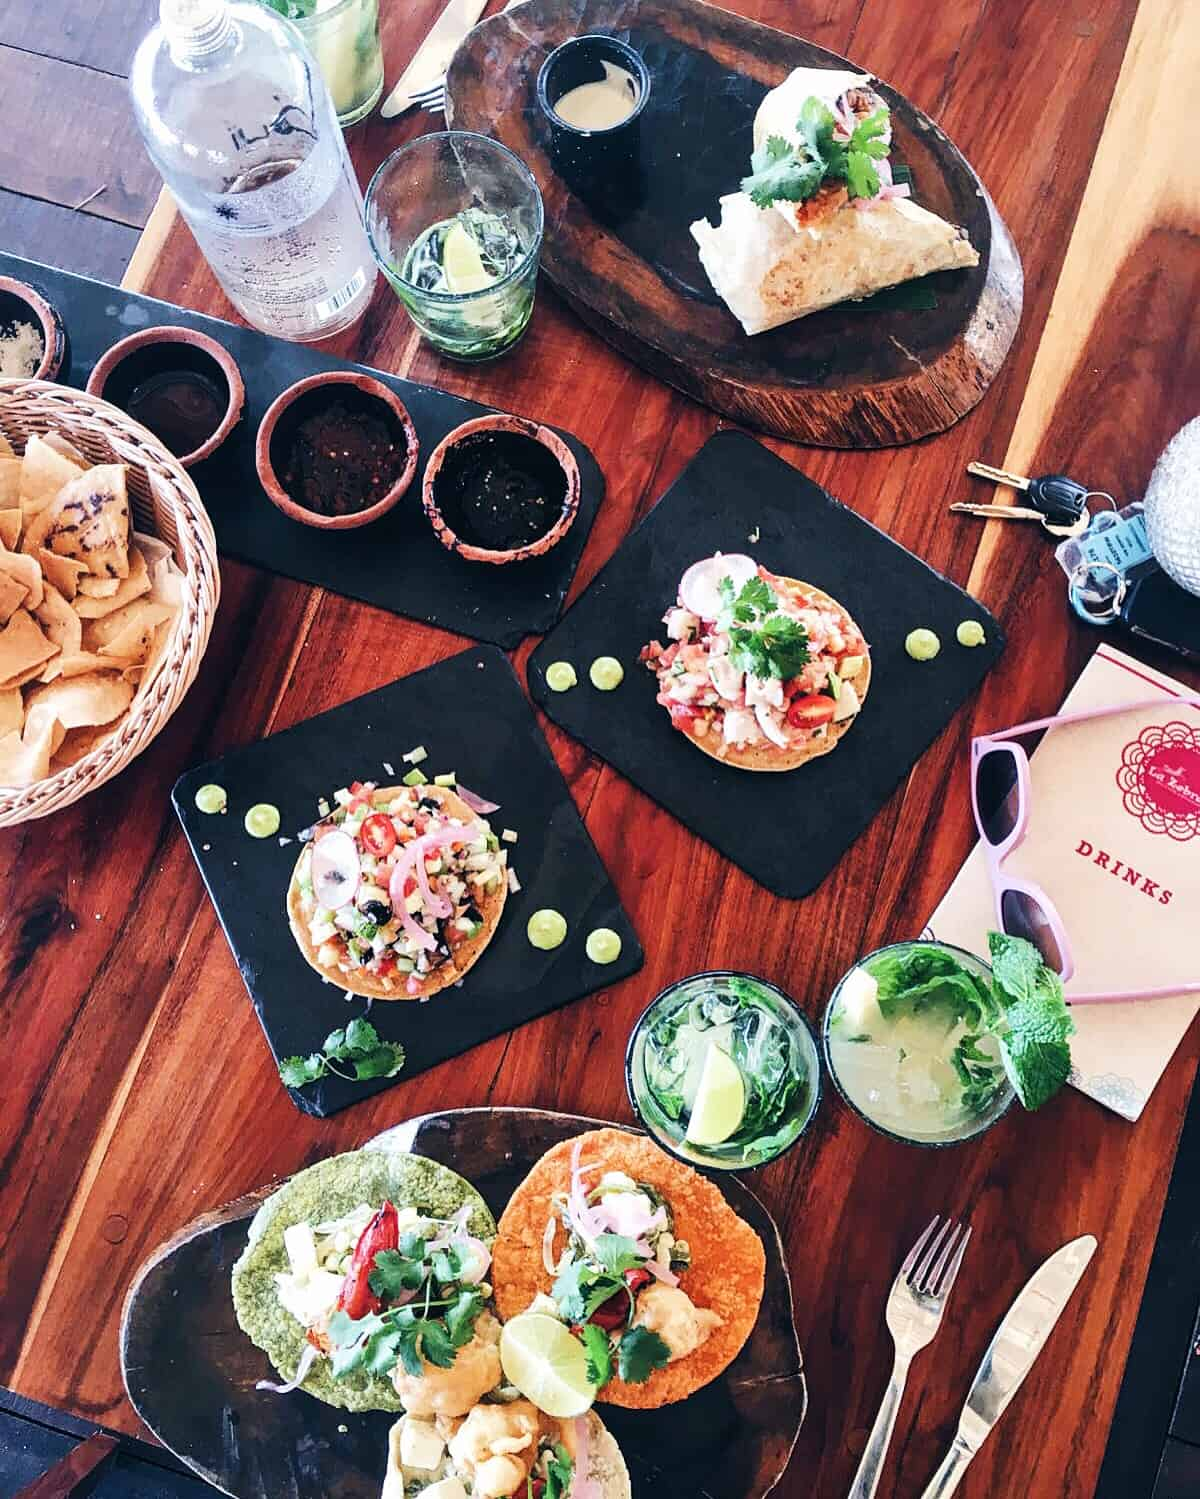 Overhead view of tostadas on a wood table.